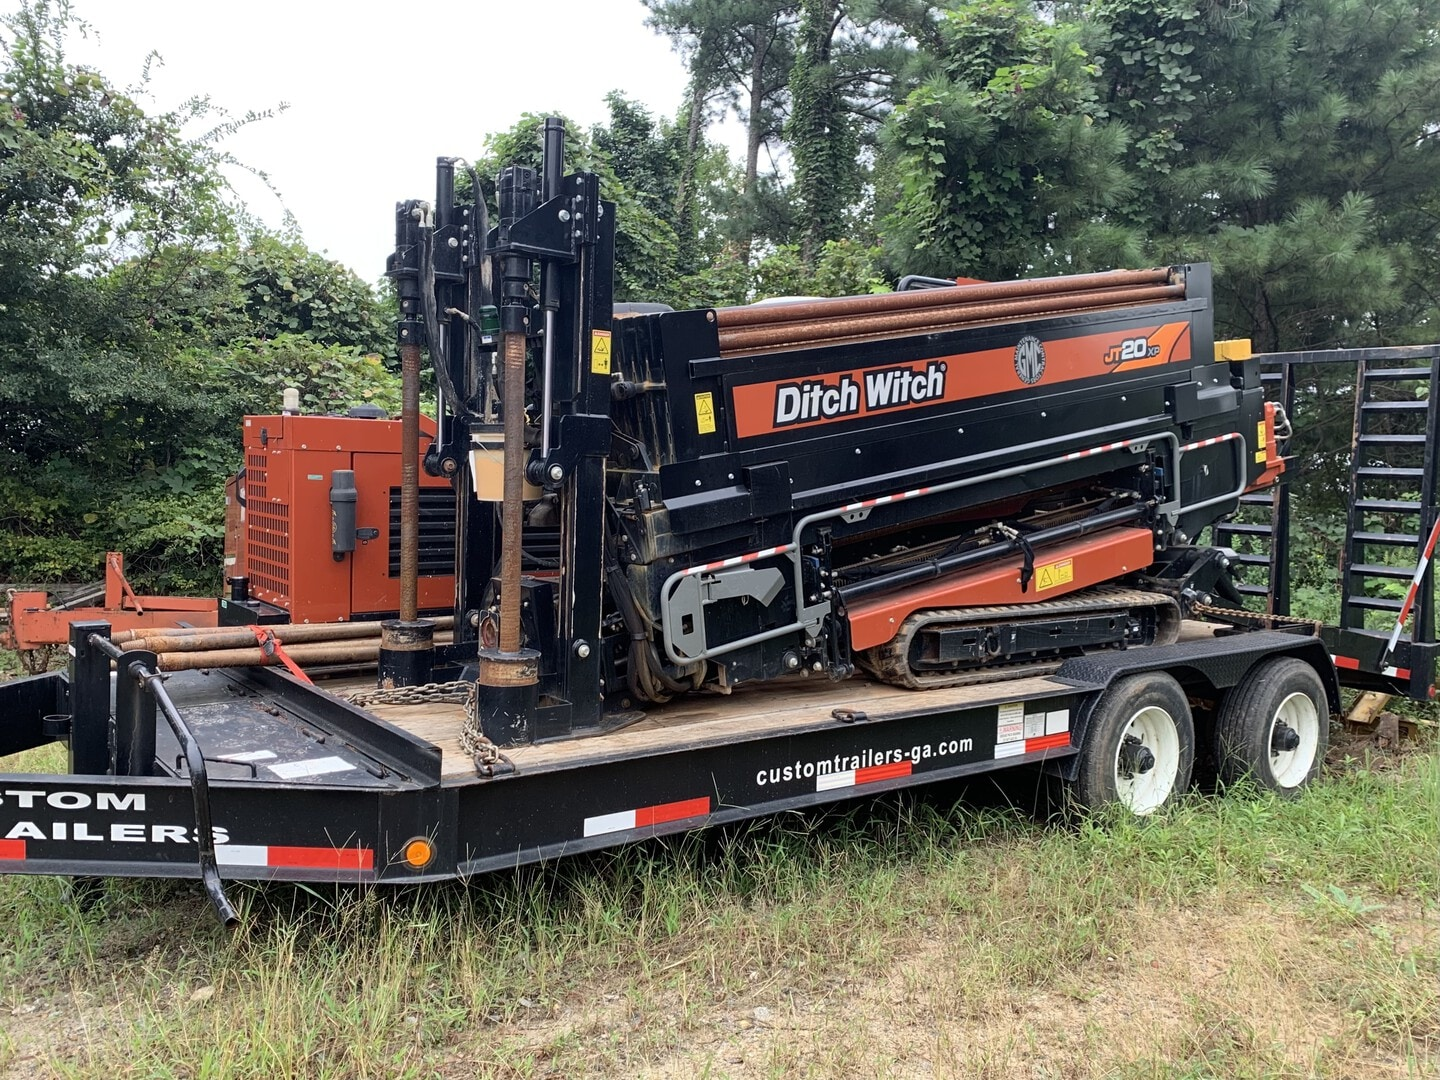 Used, 2018, Ditch Witch, JT20XP with 400' DW Pipe, Housing, Bit, XP44 Power Pack, 500 Gallon Tank, Custom CT12 24,000 GVW Drill Trailer, Boring / Drilling Machines